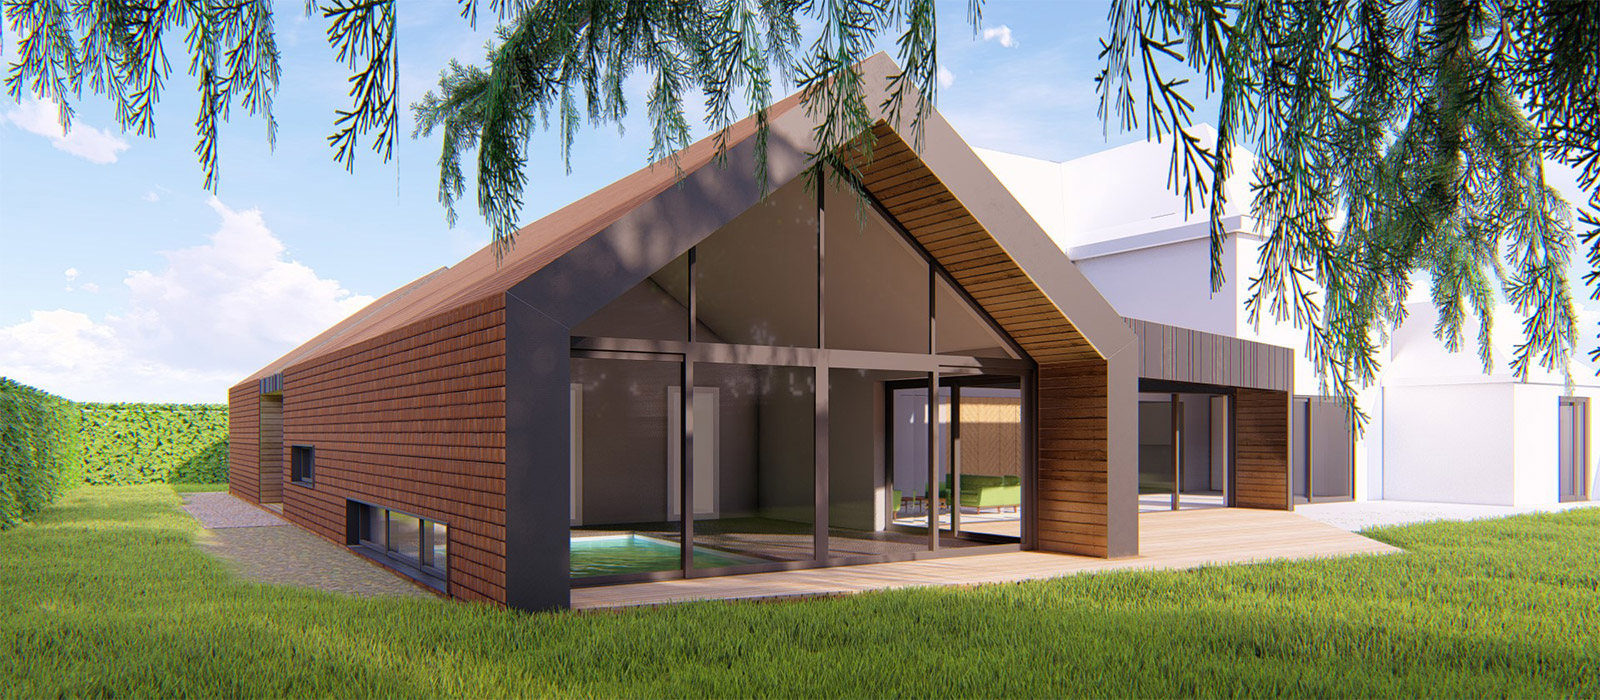 gyd-architecture | 3D render of approved planning drawings